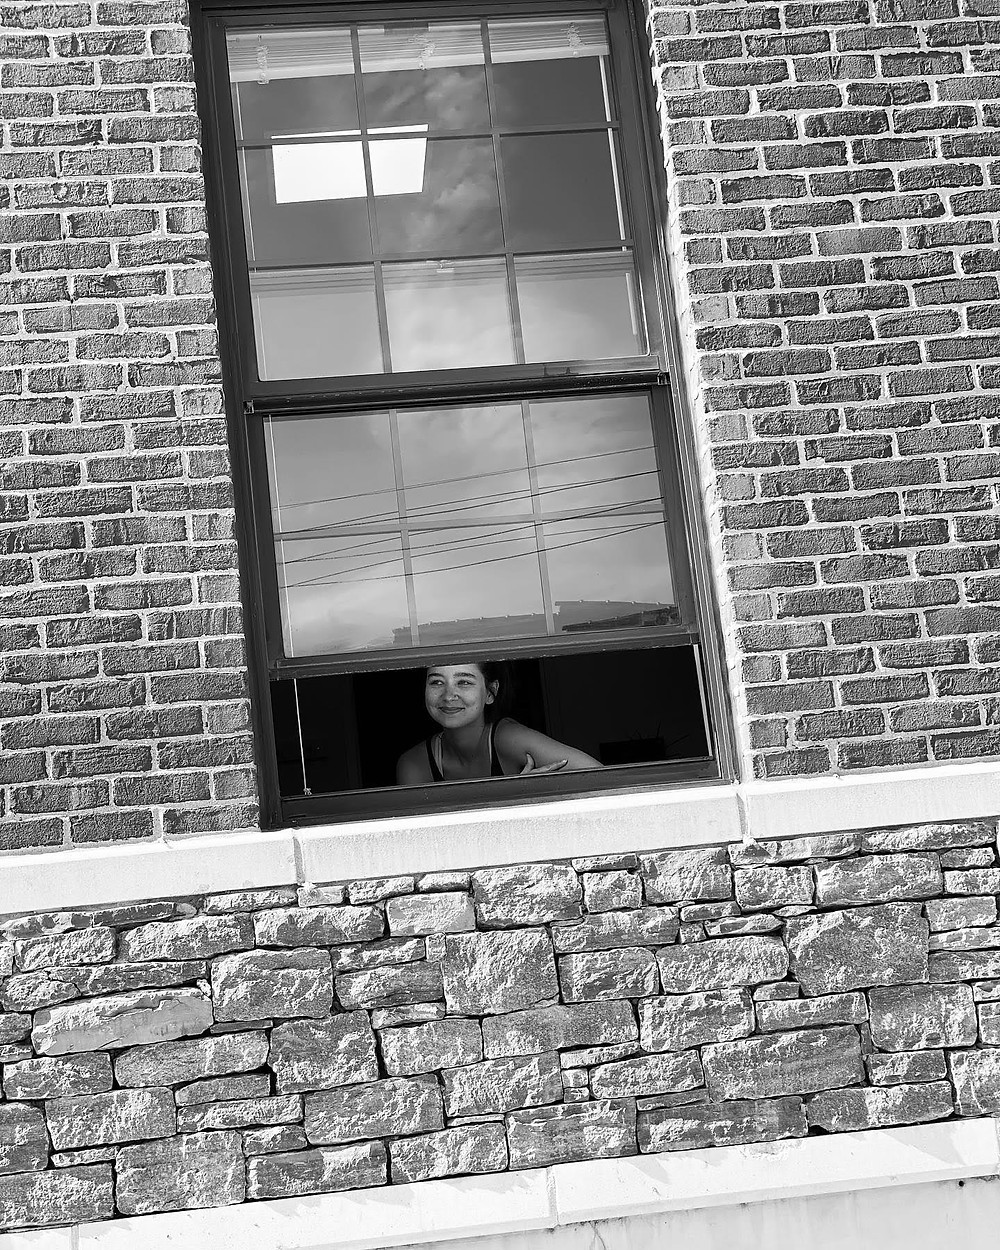 A woman is in a brink building. She looks out the open window and smiles.